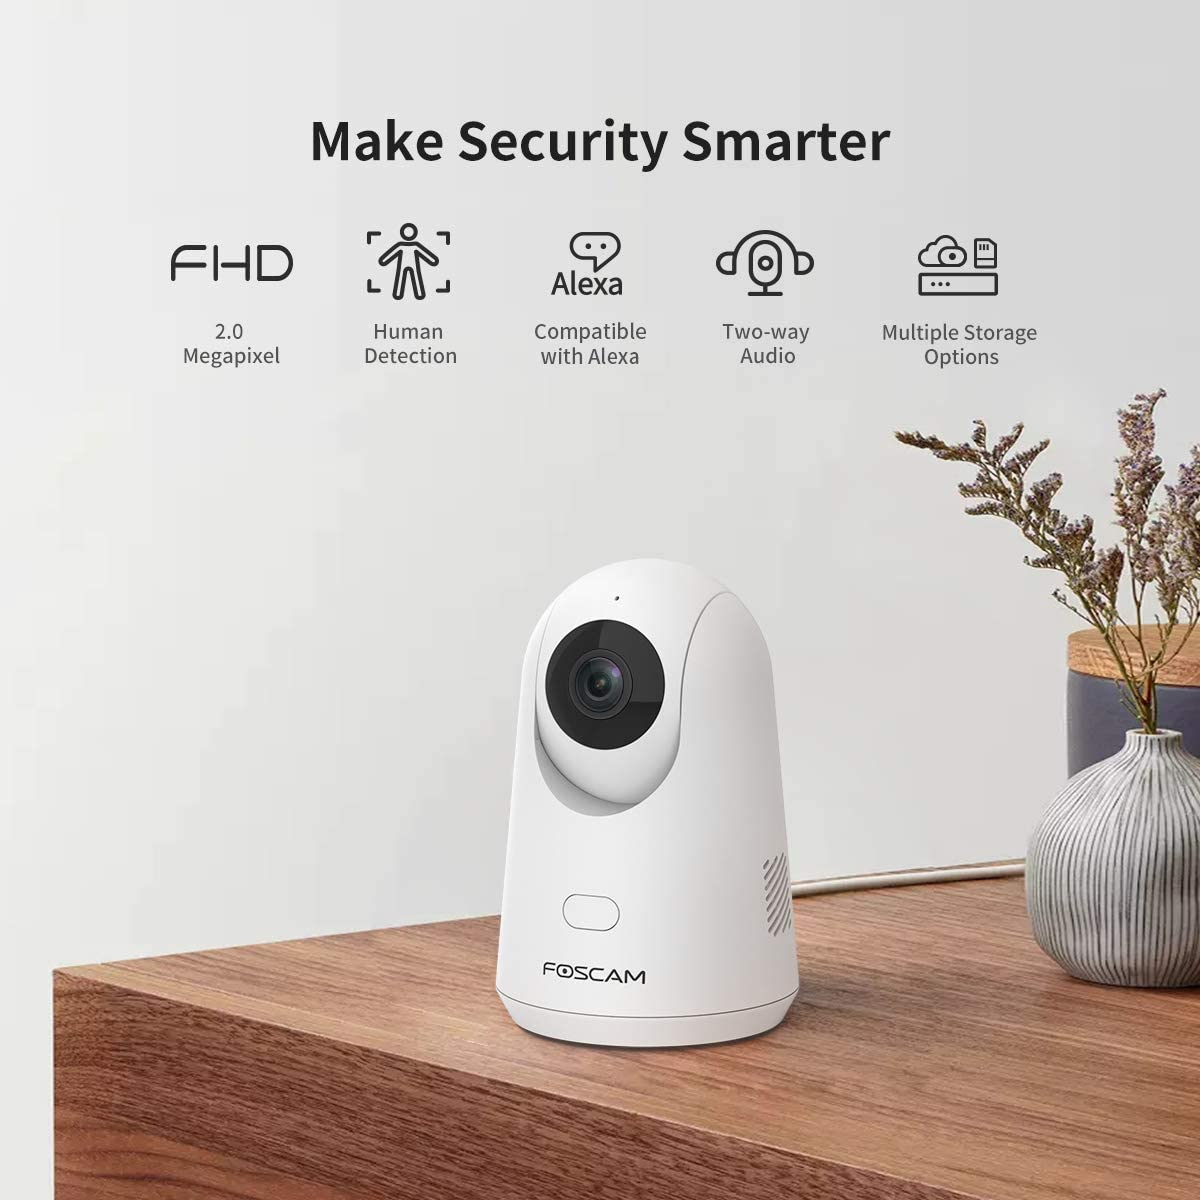 WiFi Camera Indoor,Foscam X2 1080P Home Security IP Camera,Baby Monitor with Audio, Human Detection, Motion Sound Detection, Night Vision, Cloud Storage, Works with Alexa